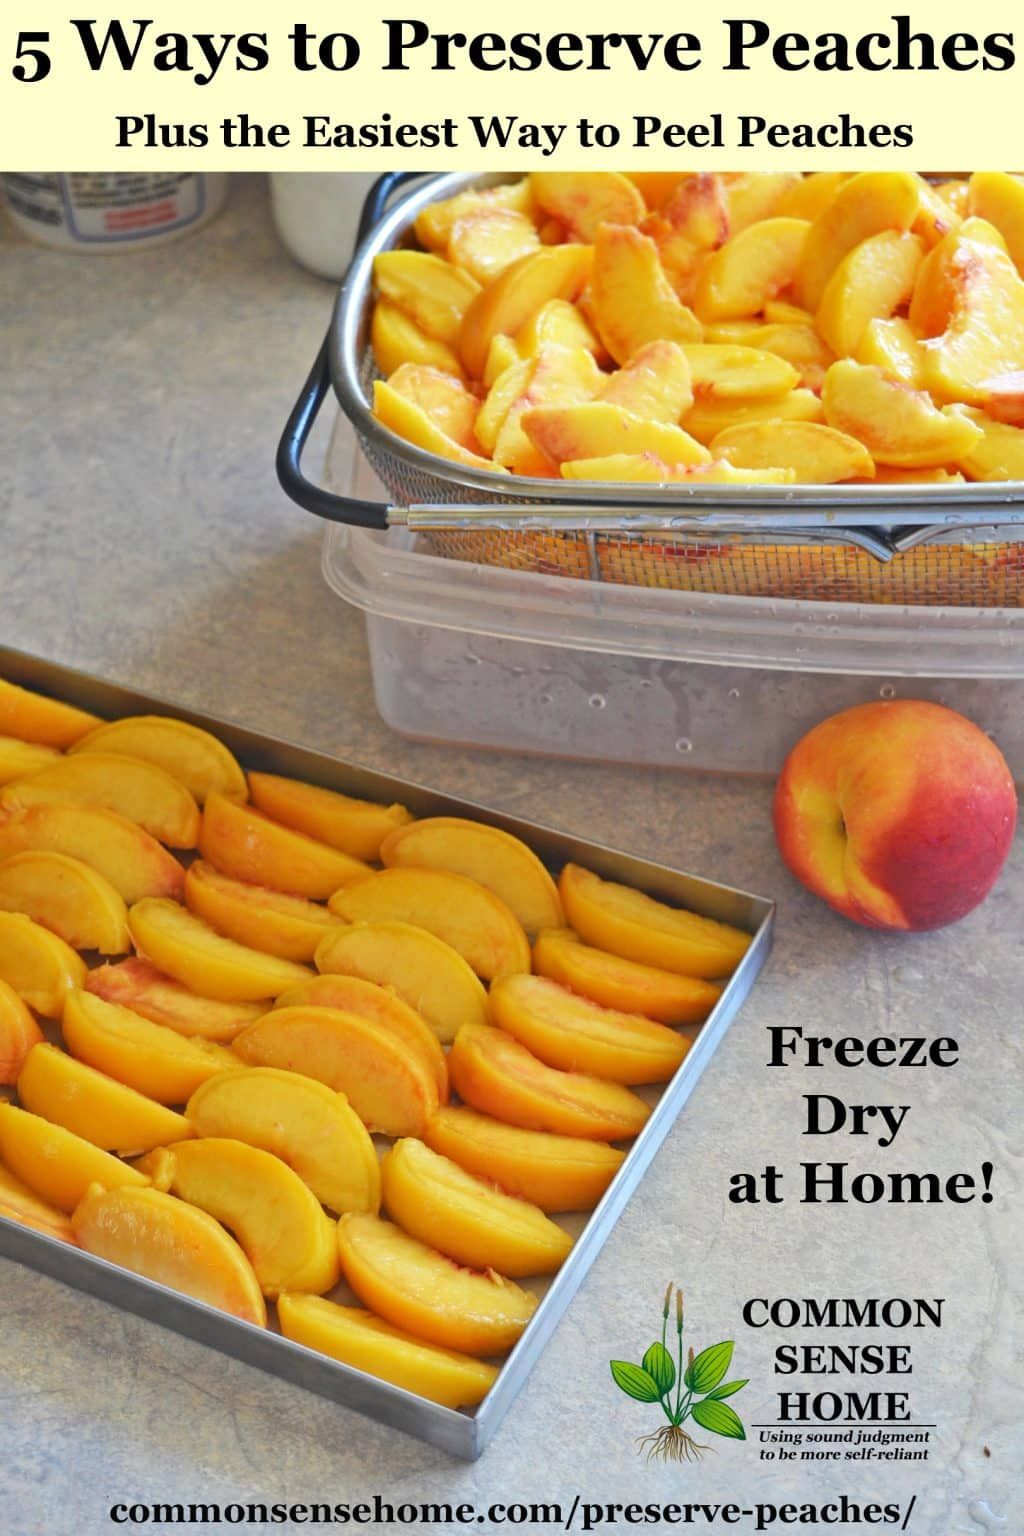 Peach slices prepared for freeze drying